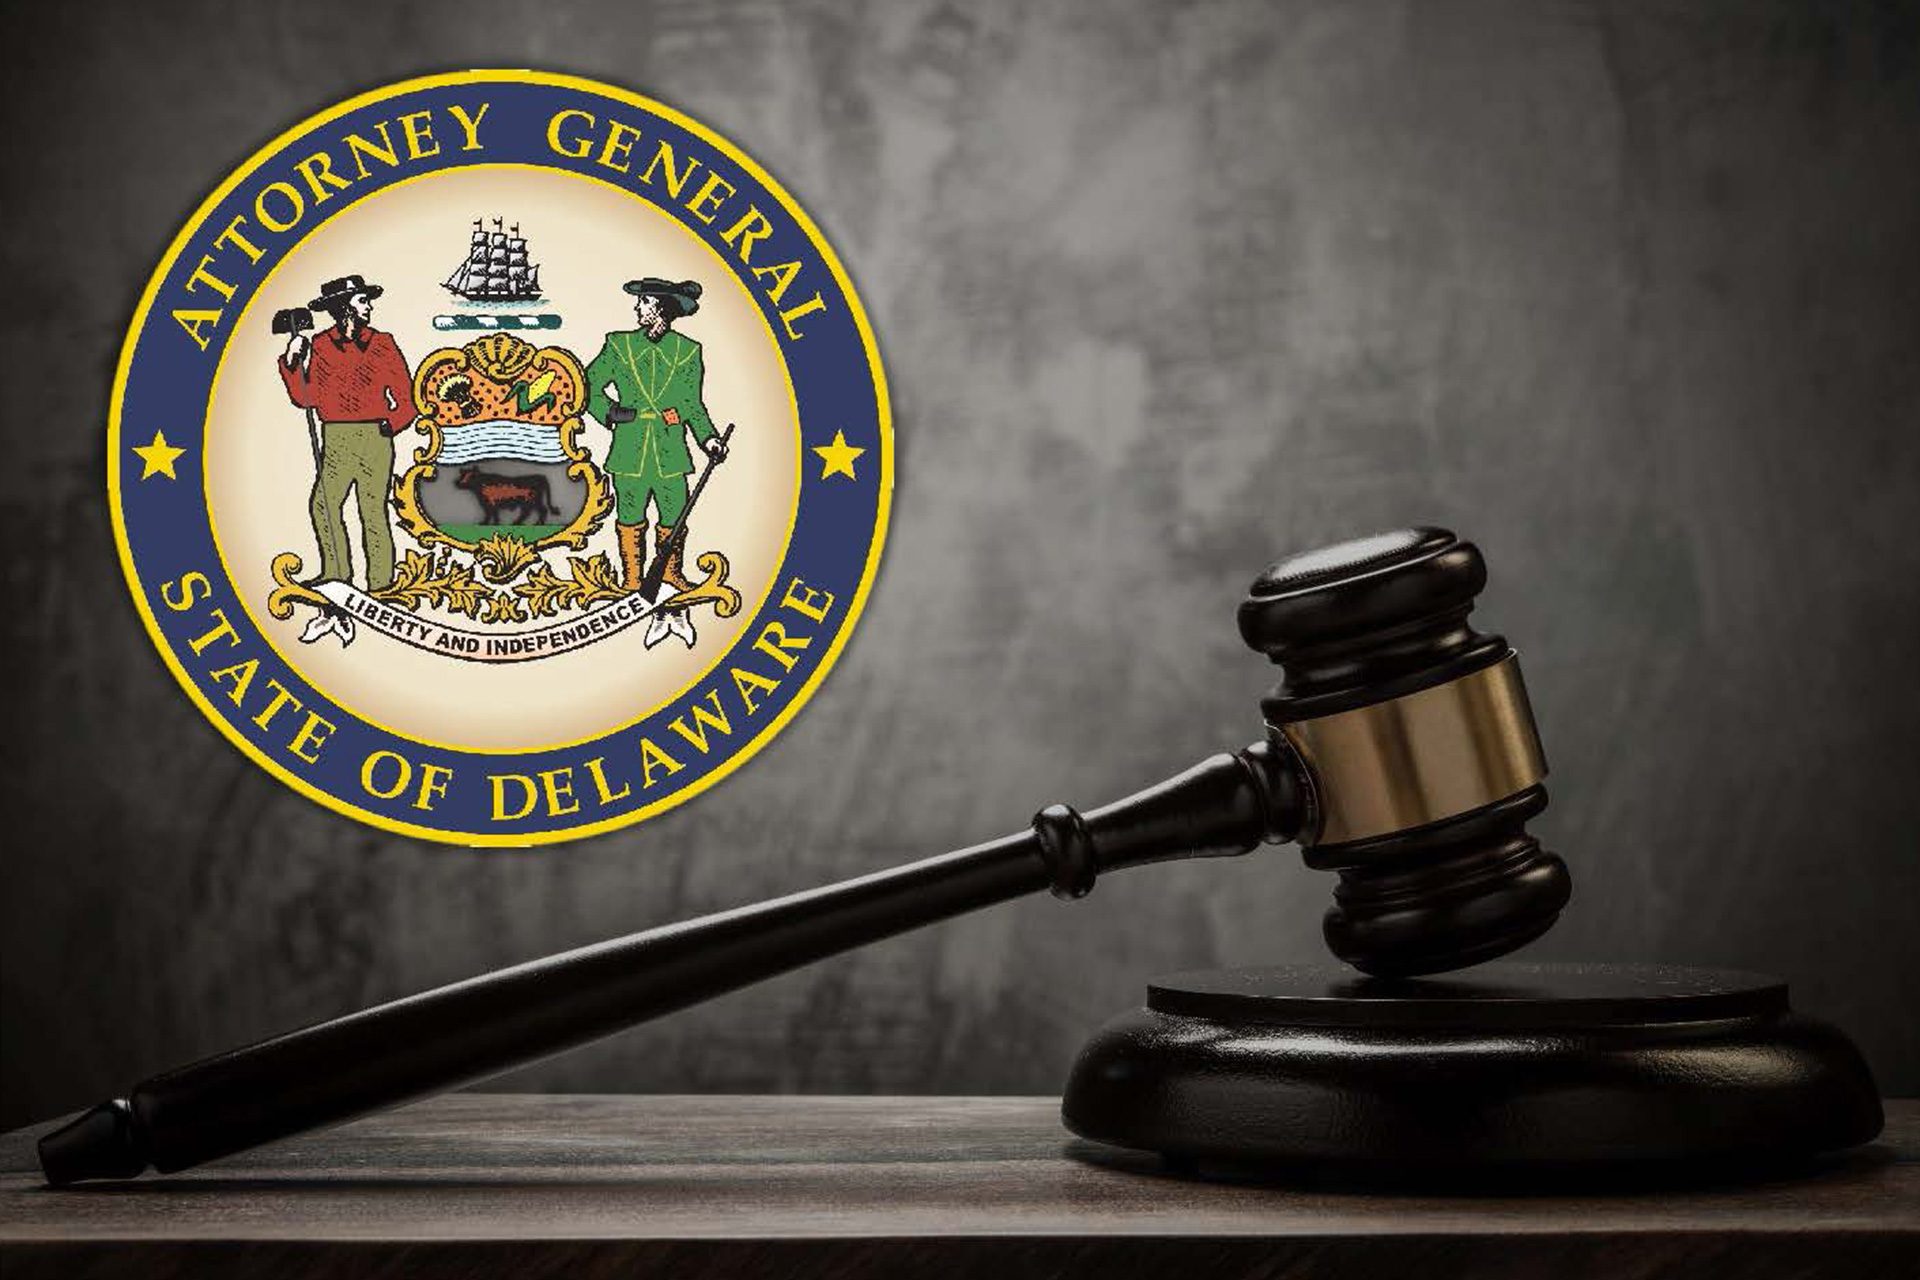 Image of the Attorney General's Seal and a gavel